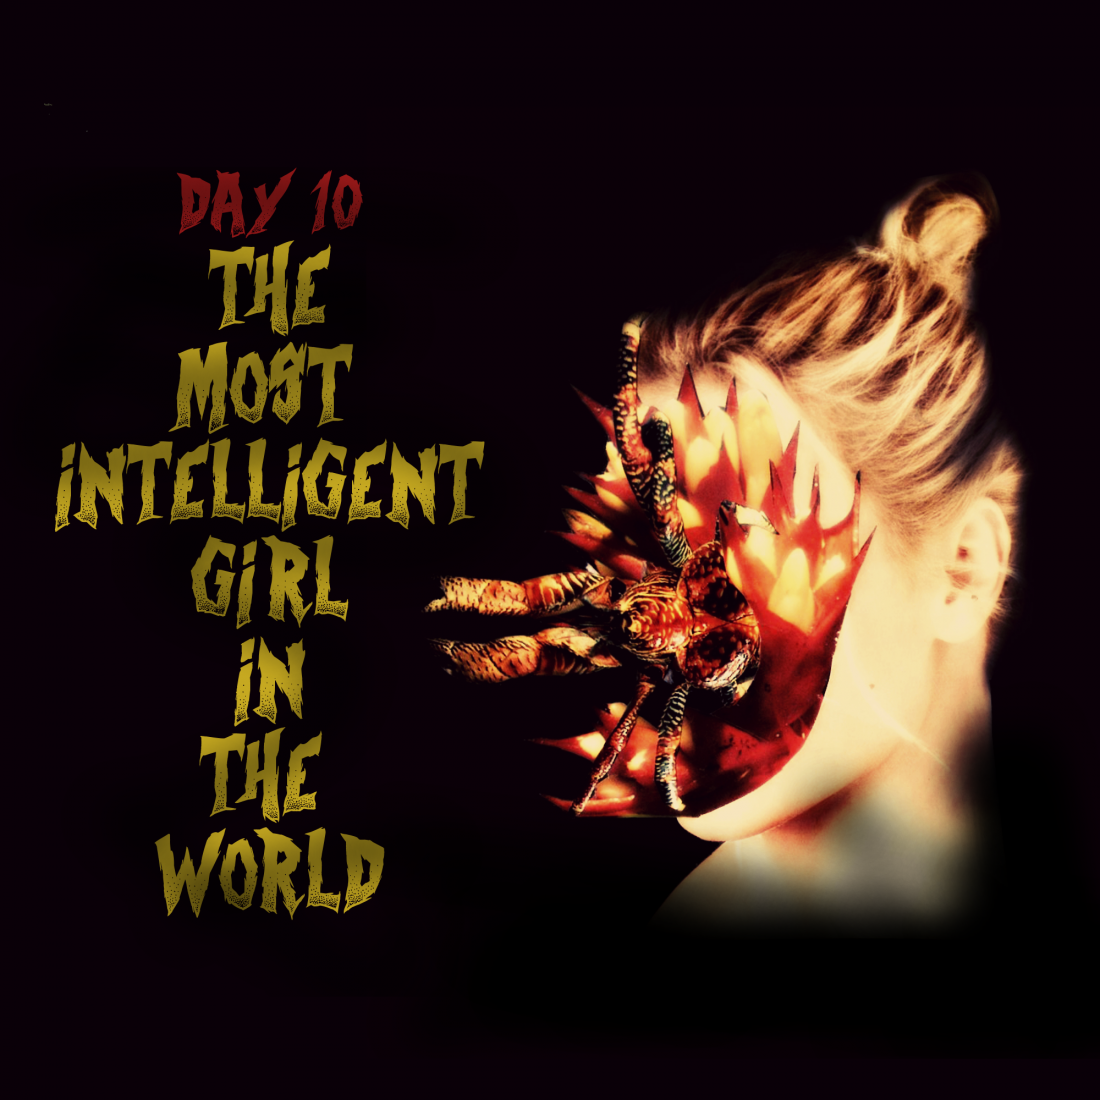 drawlloween-10-the-most-intelligent-girl-in-the-world